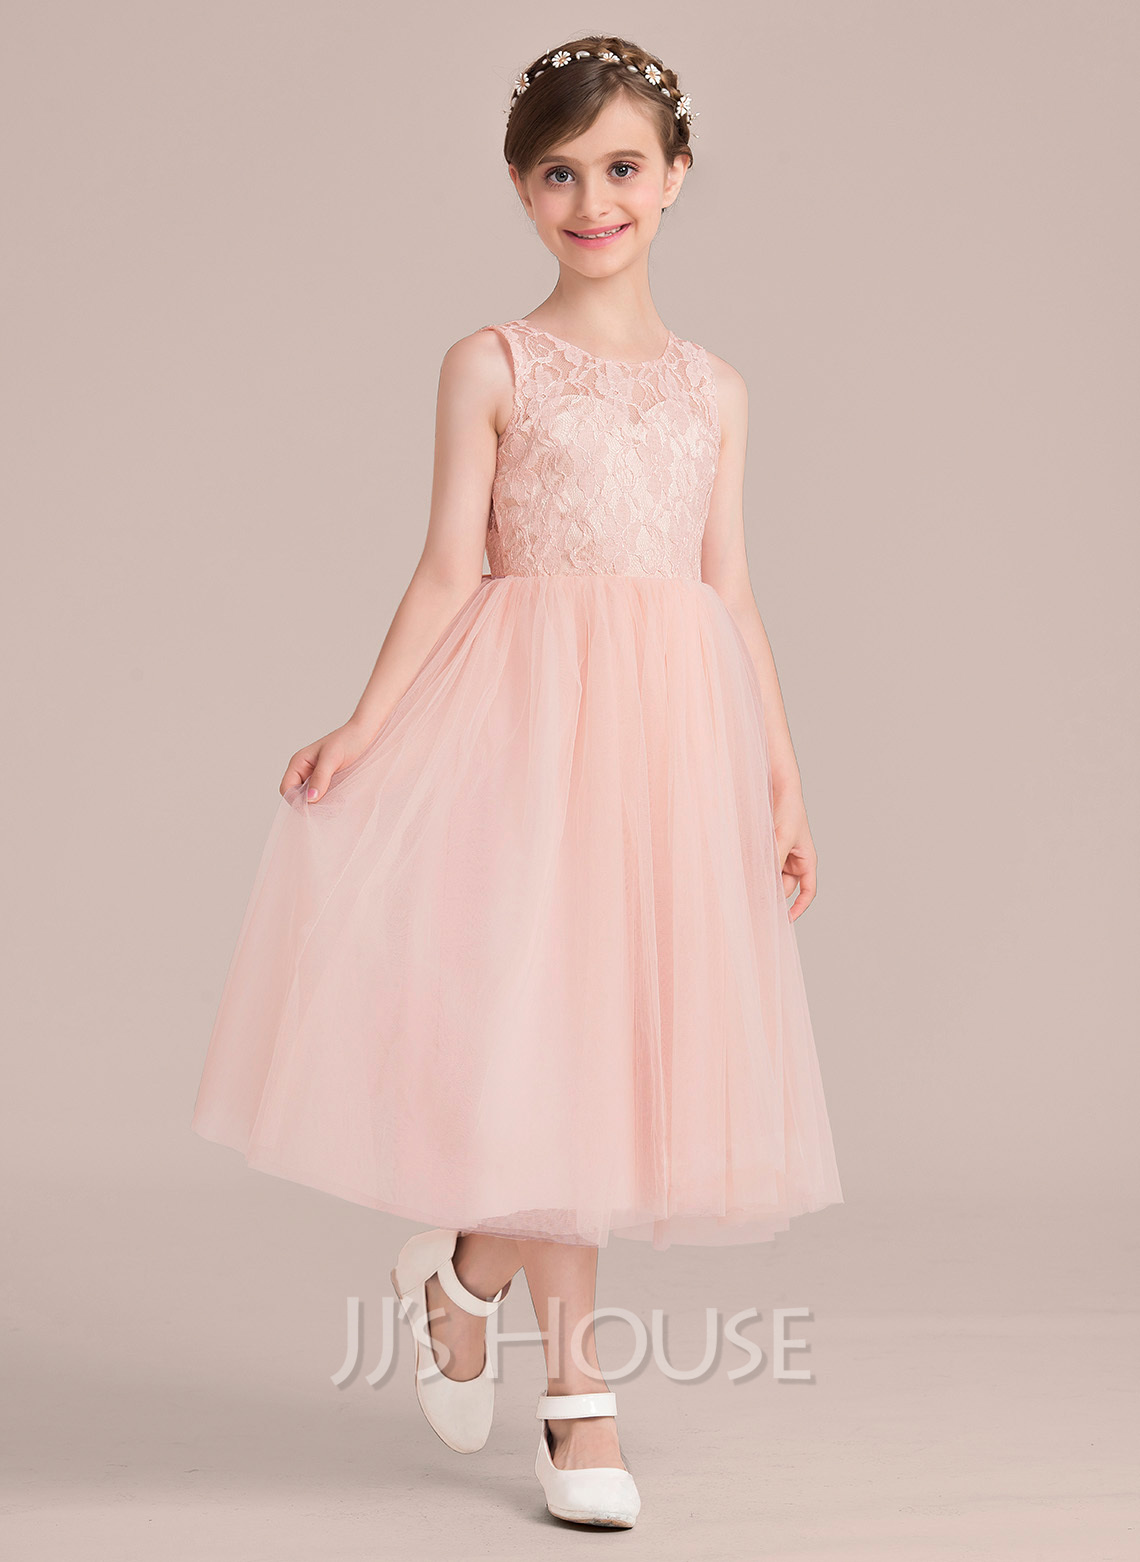 A-Line Scoop Neck Tea-Length Tulle Junior Bridesmaid Dress With Beading Bow(s)